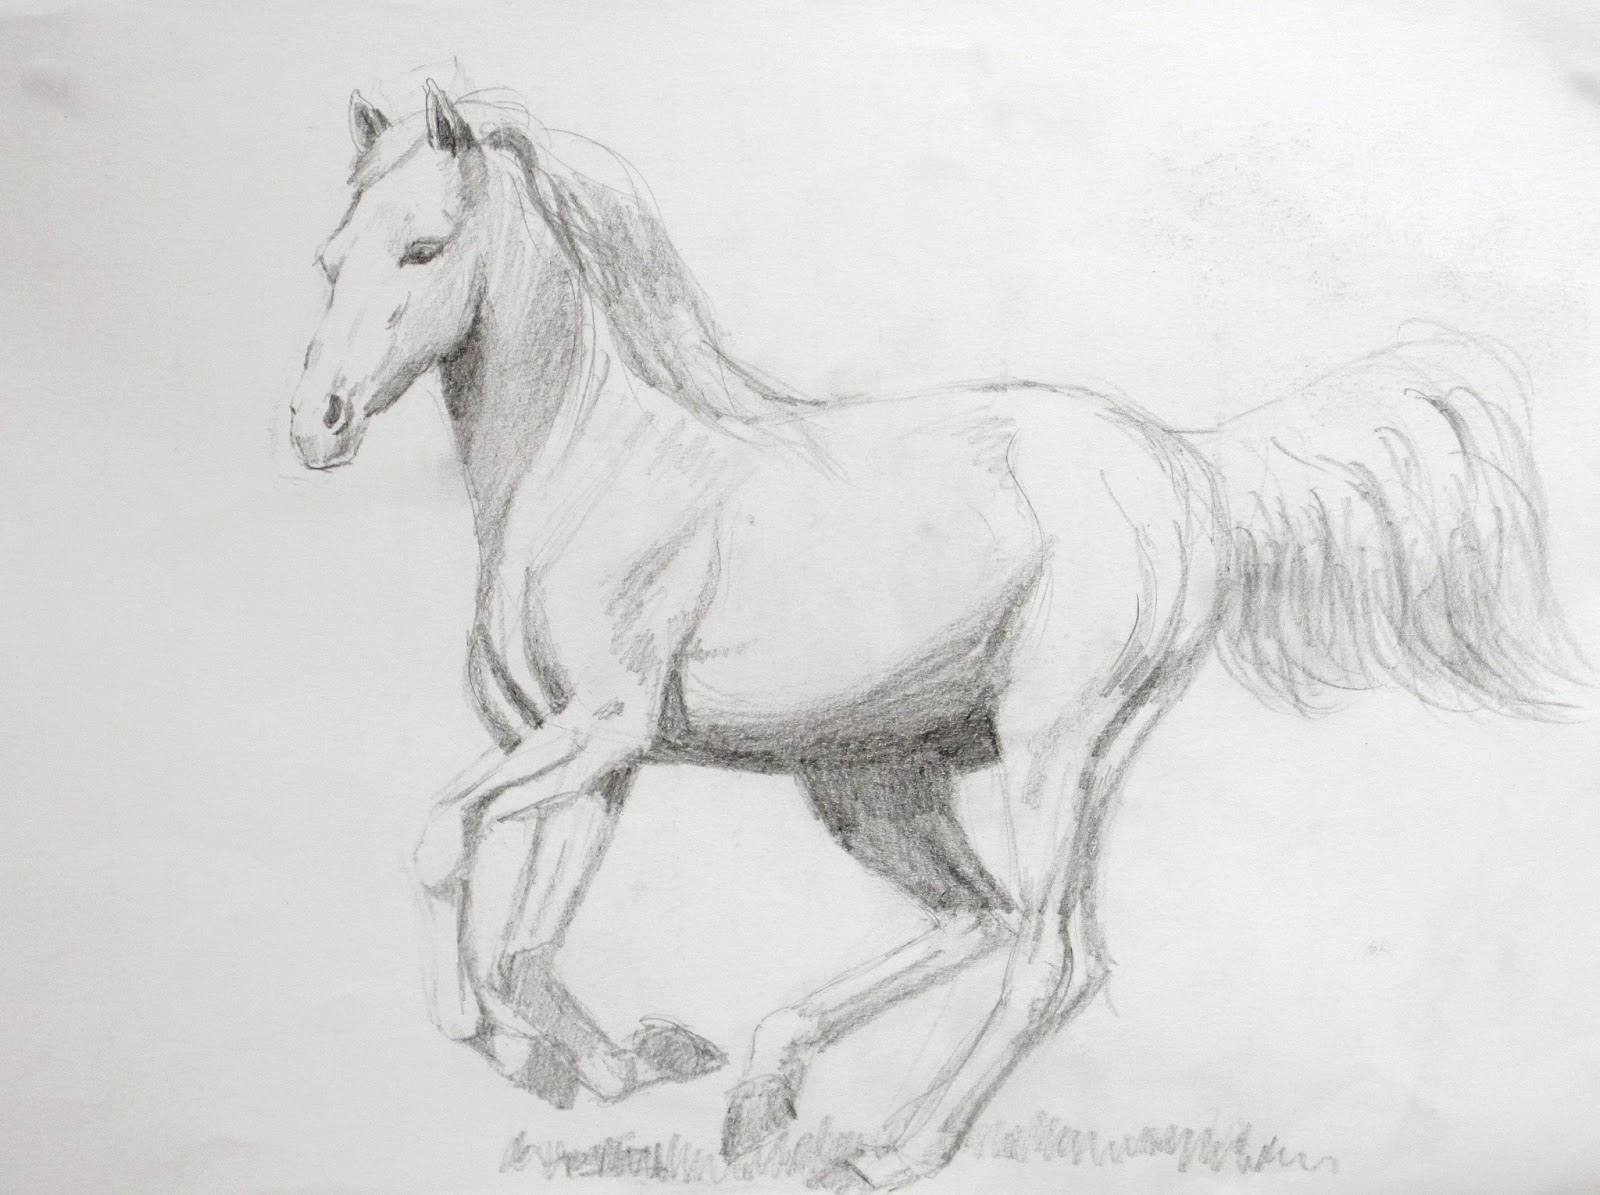 Galloping horse sketches - photo#16